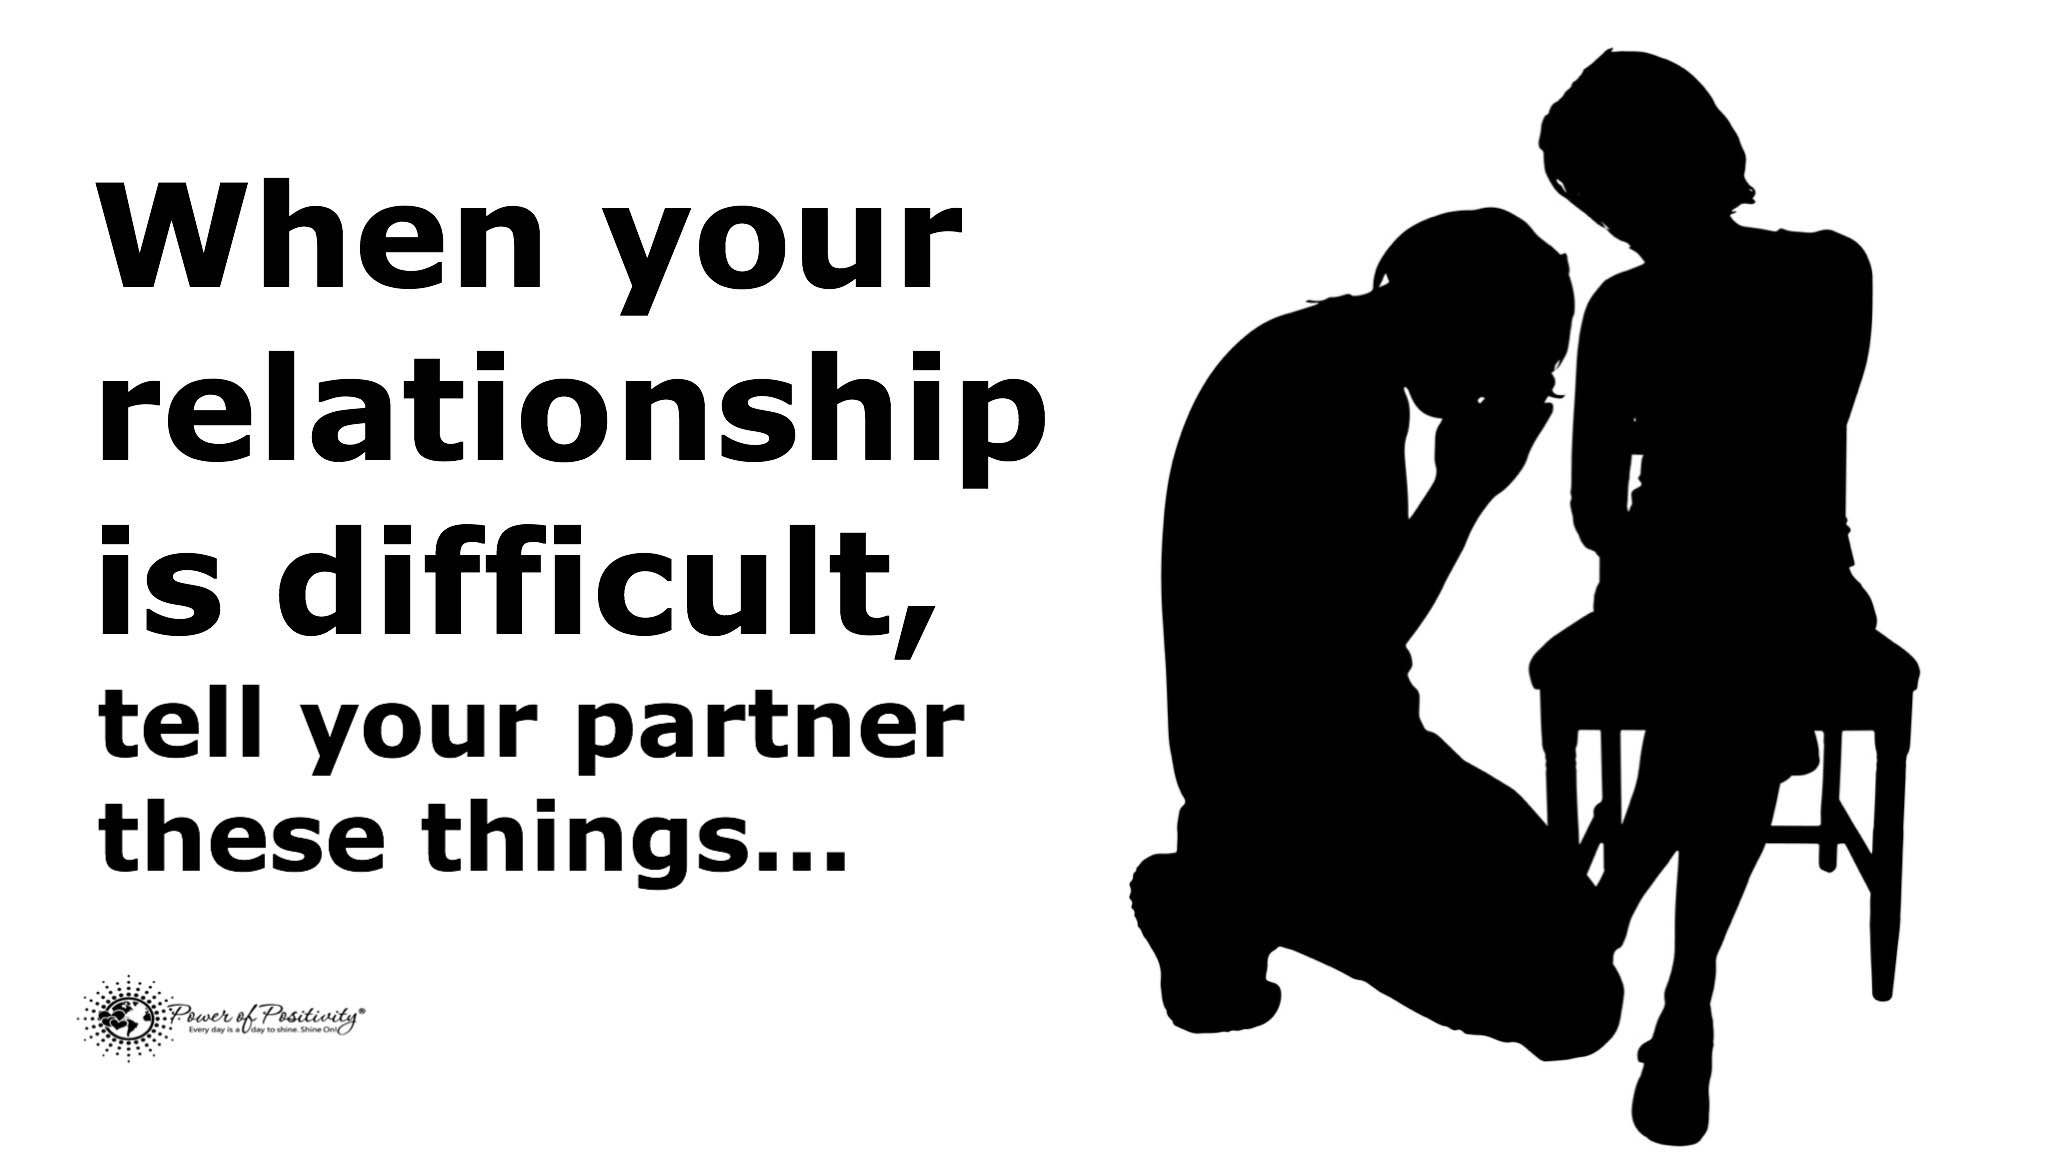 10 Things To Tell Your Partner When Your Relationship Is Difficult